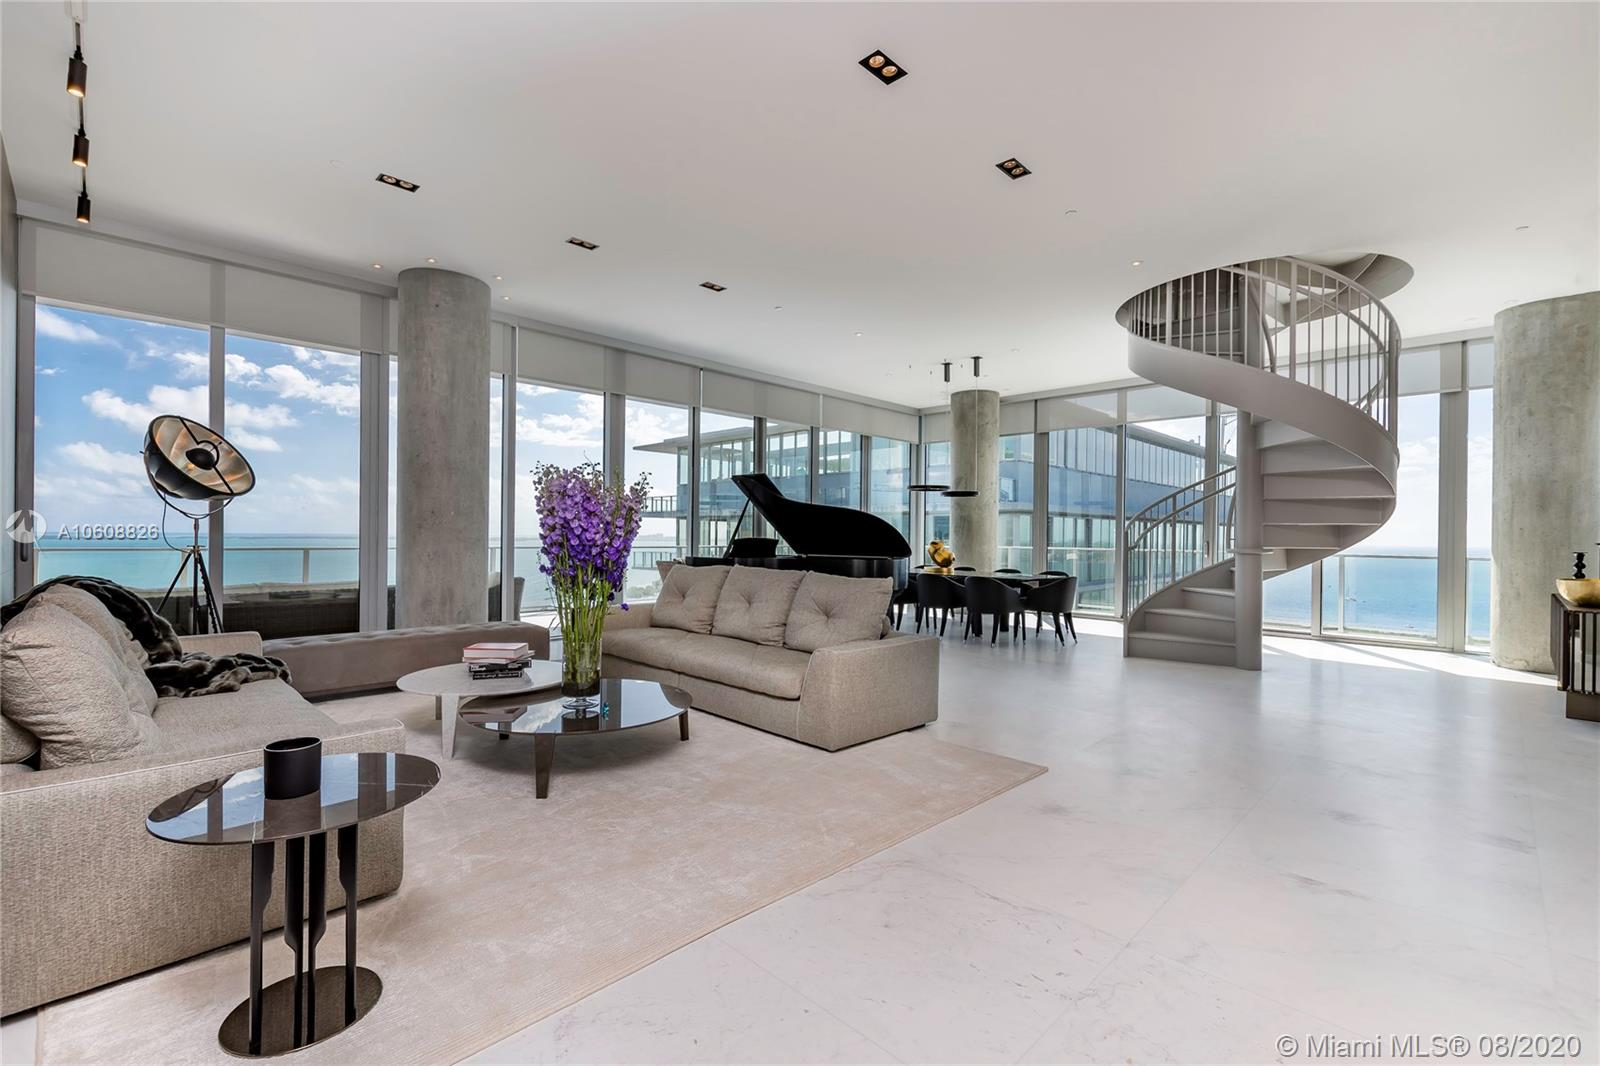 The Nicest Penthouse in Miami, at this distinct contemporary building with luxury amenities like 5 pools, spa, fitness center, club room, library, residents lounge, children area, pet area, full time concierge, private elevator. Modern Professionally Decorated Penthouse has a private pool and its own roof top, over $1 million in upgrades, fantastic media room, high end new bathrooms, high tech; curtains, temperature and light controls. Amazing views from every room.